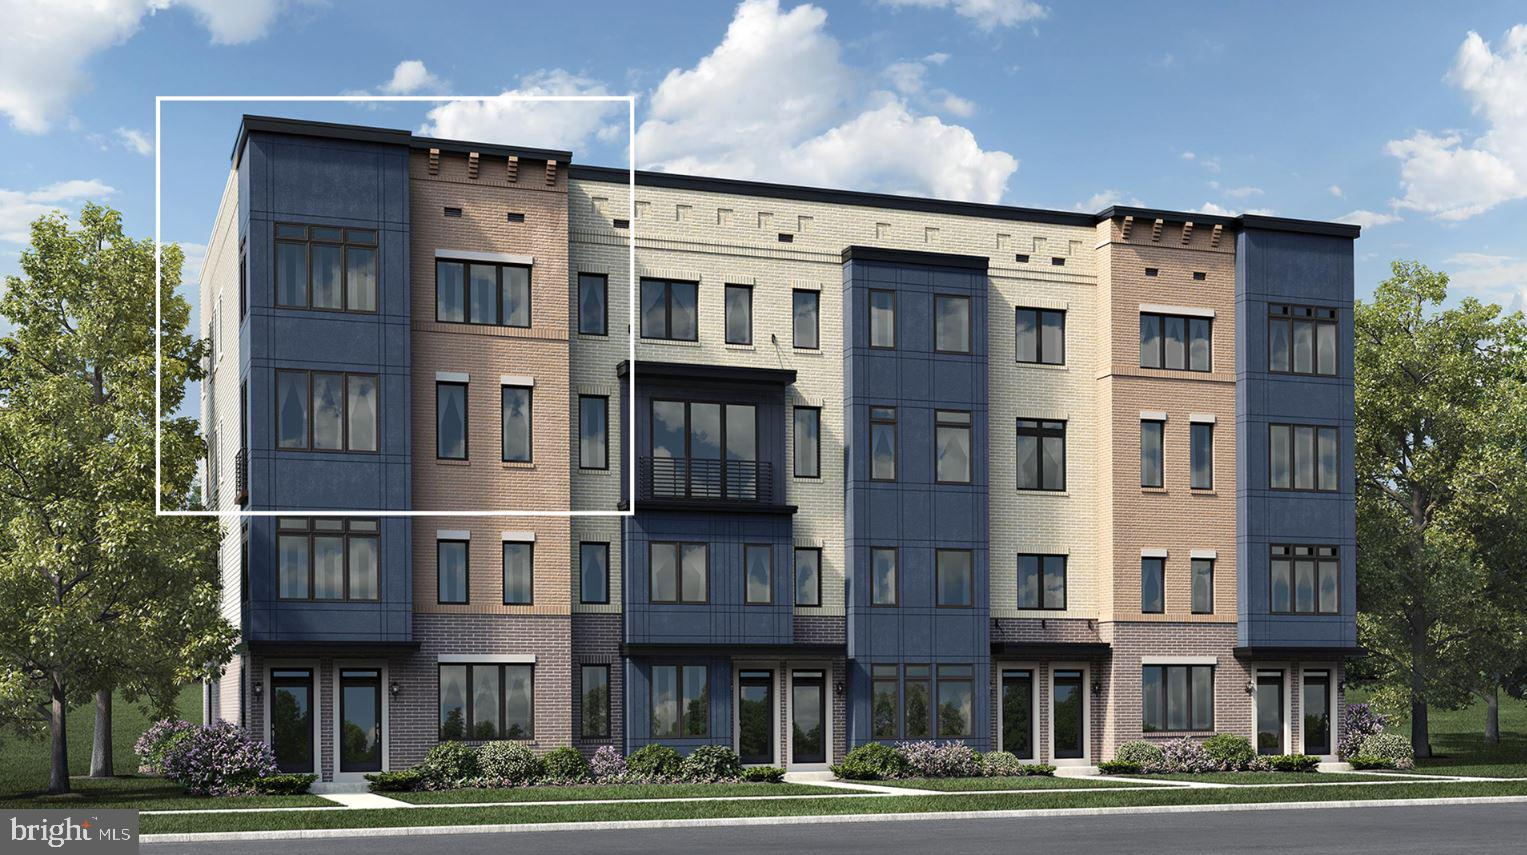 Contemporary townhome style condo, with rooftop terrace option in Ashburn. Conveniently located near